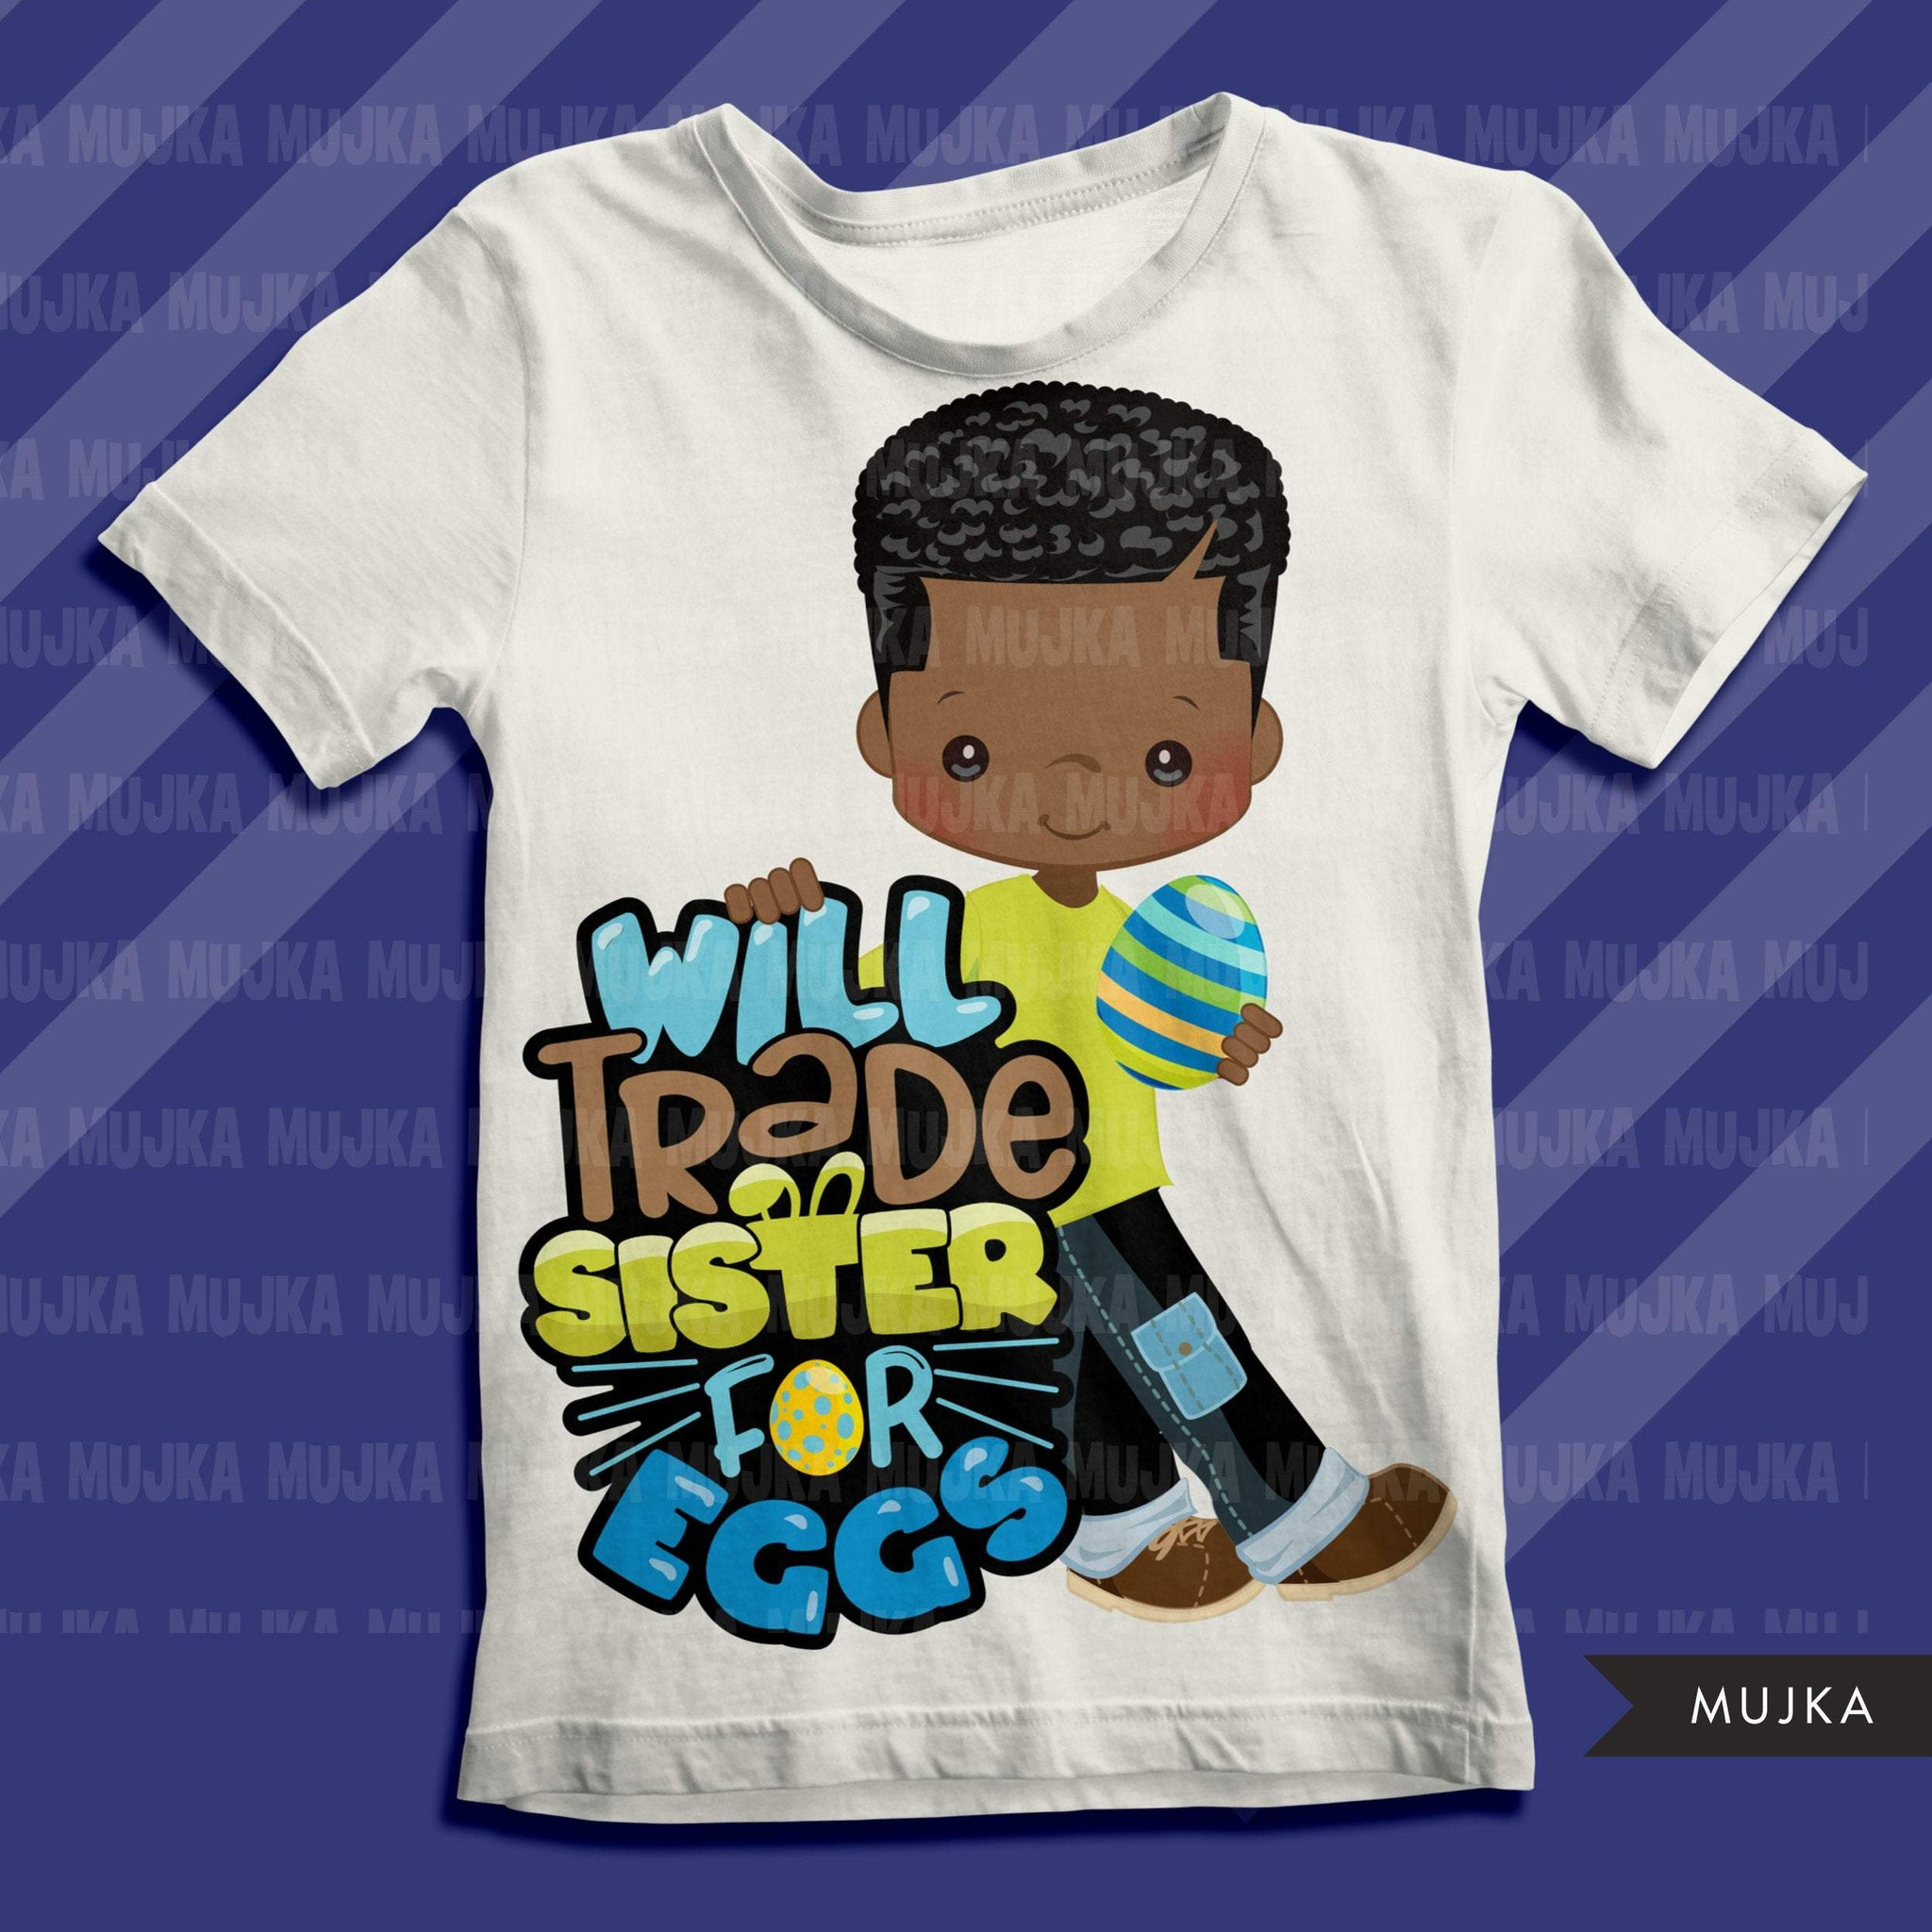 Easter PNG digital, Will trade sister for eggs Printable HTV sublimation image transfer clipart, t-shirt Afro black boy graphics